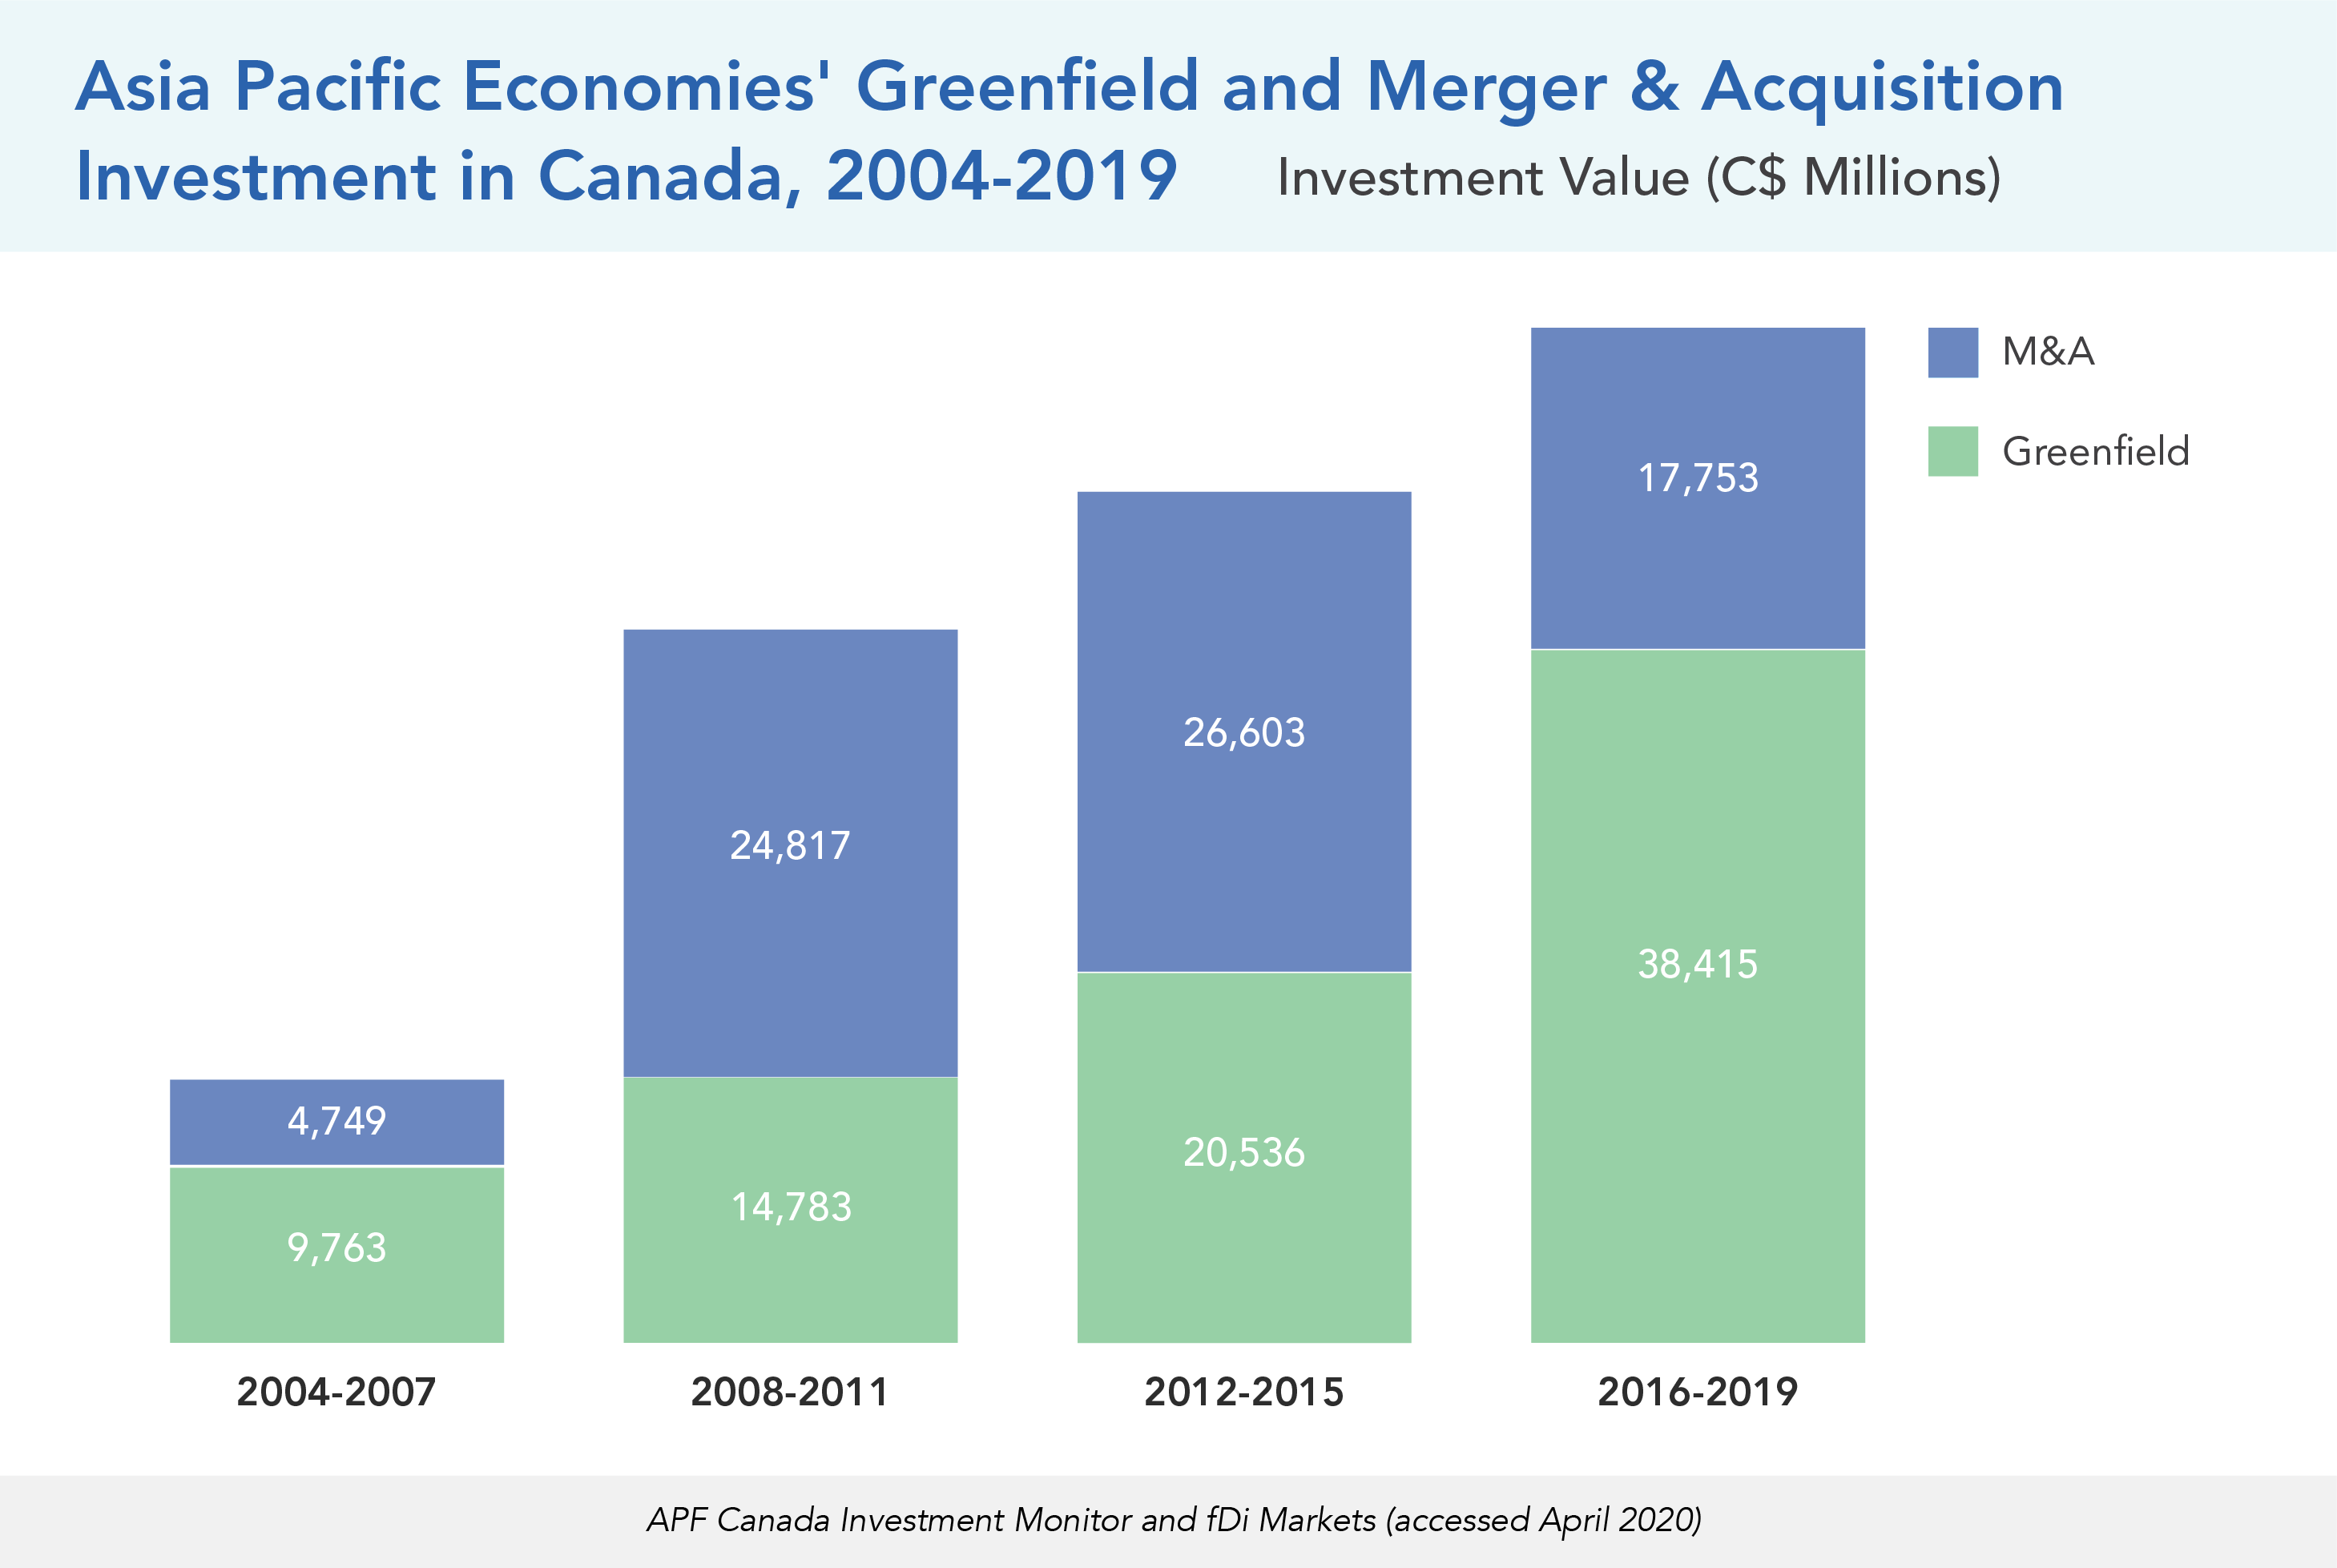 Asia Pacific Economies' Greenfield and Merger & Acquisition Investment in Canada, 2004-2019